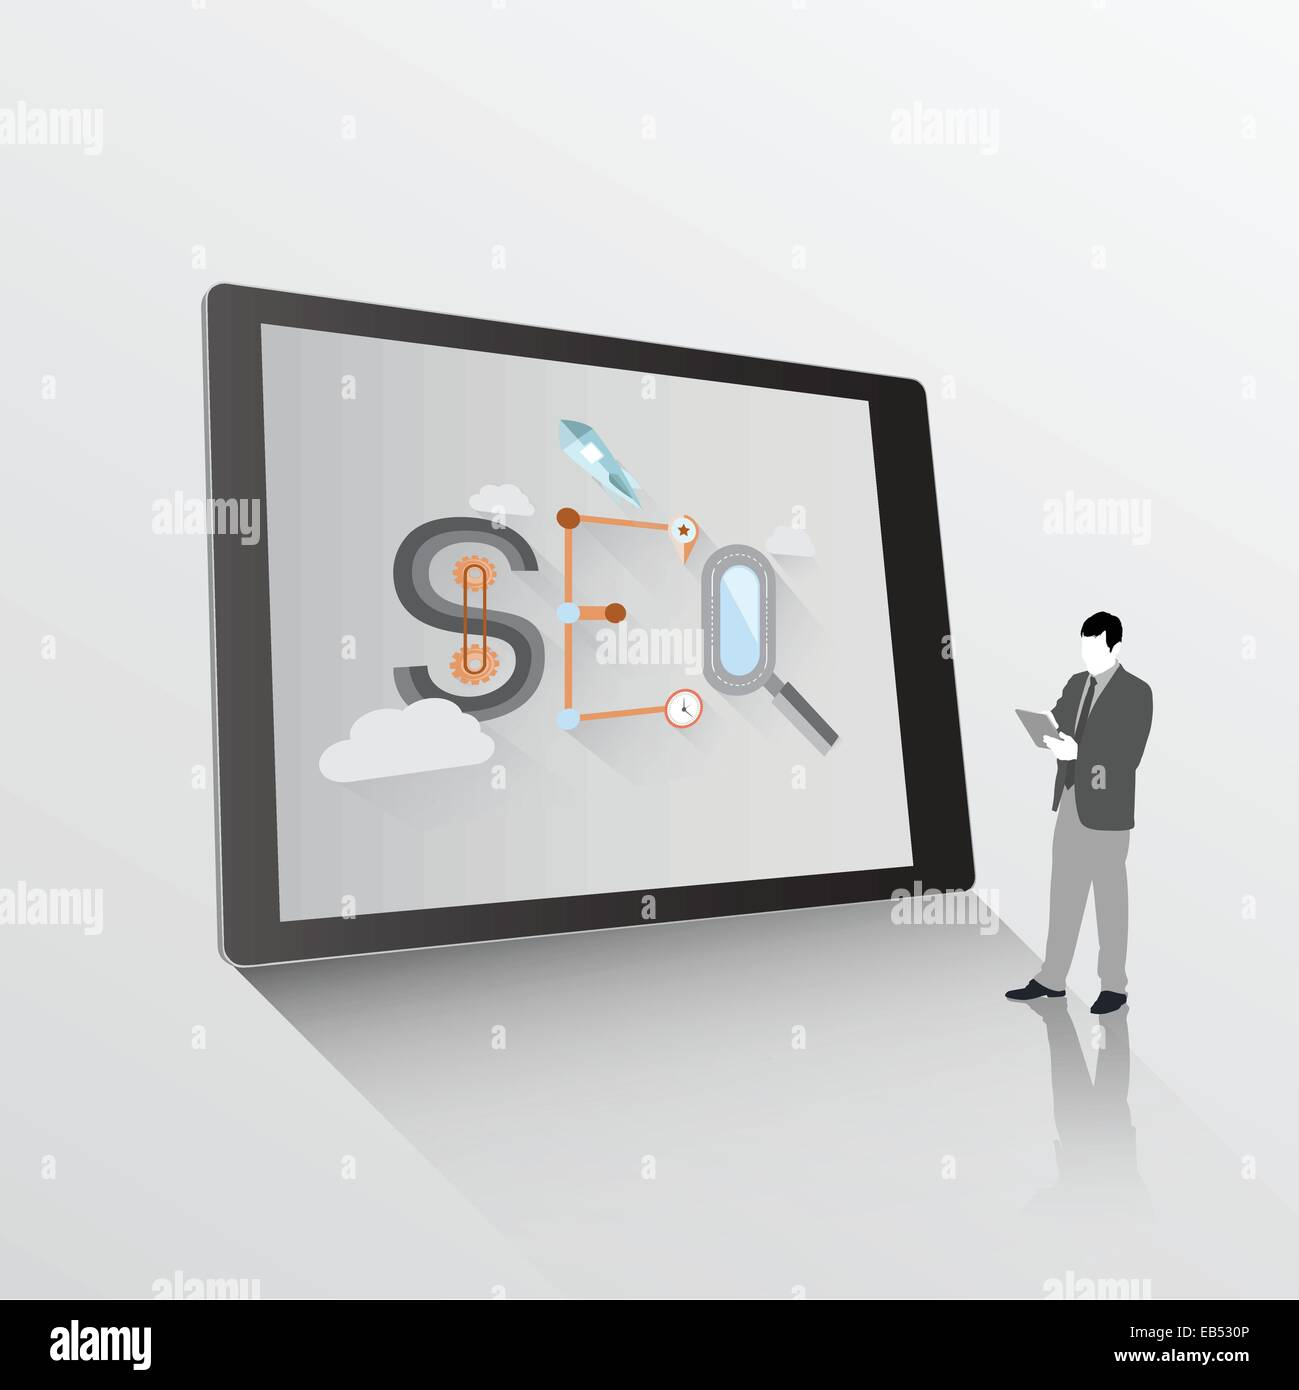 Search engine optimization graphic on tablet with businessman - Stock Vector